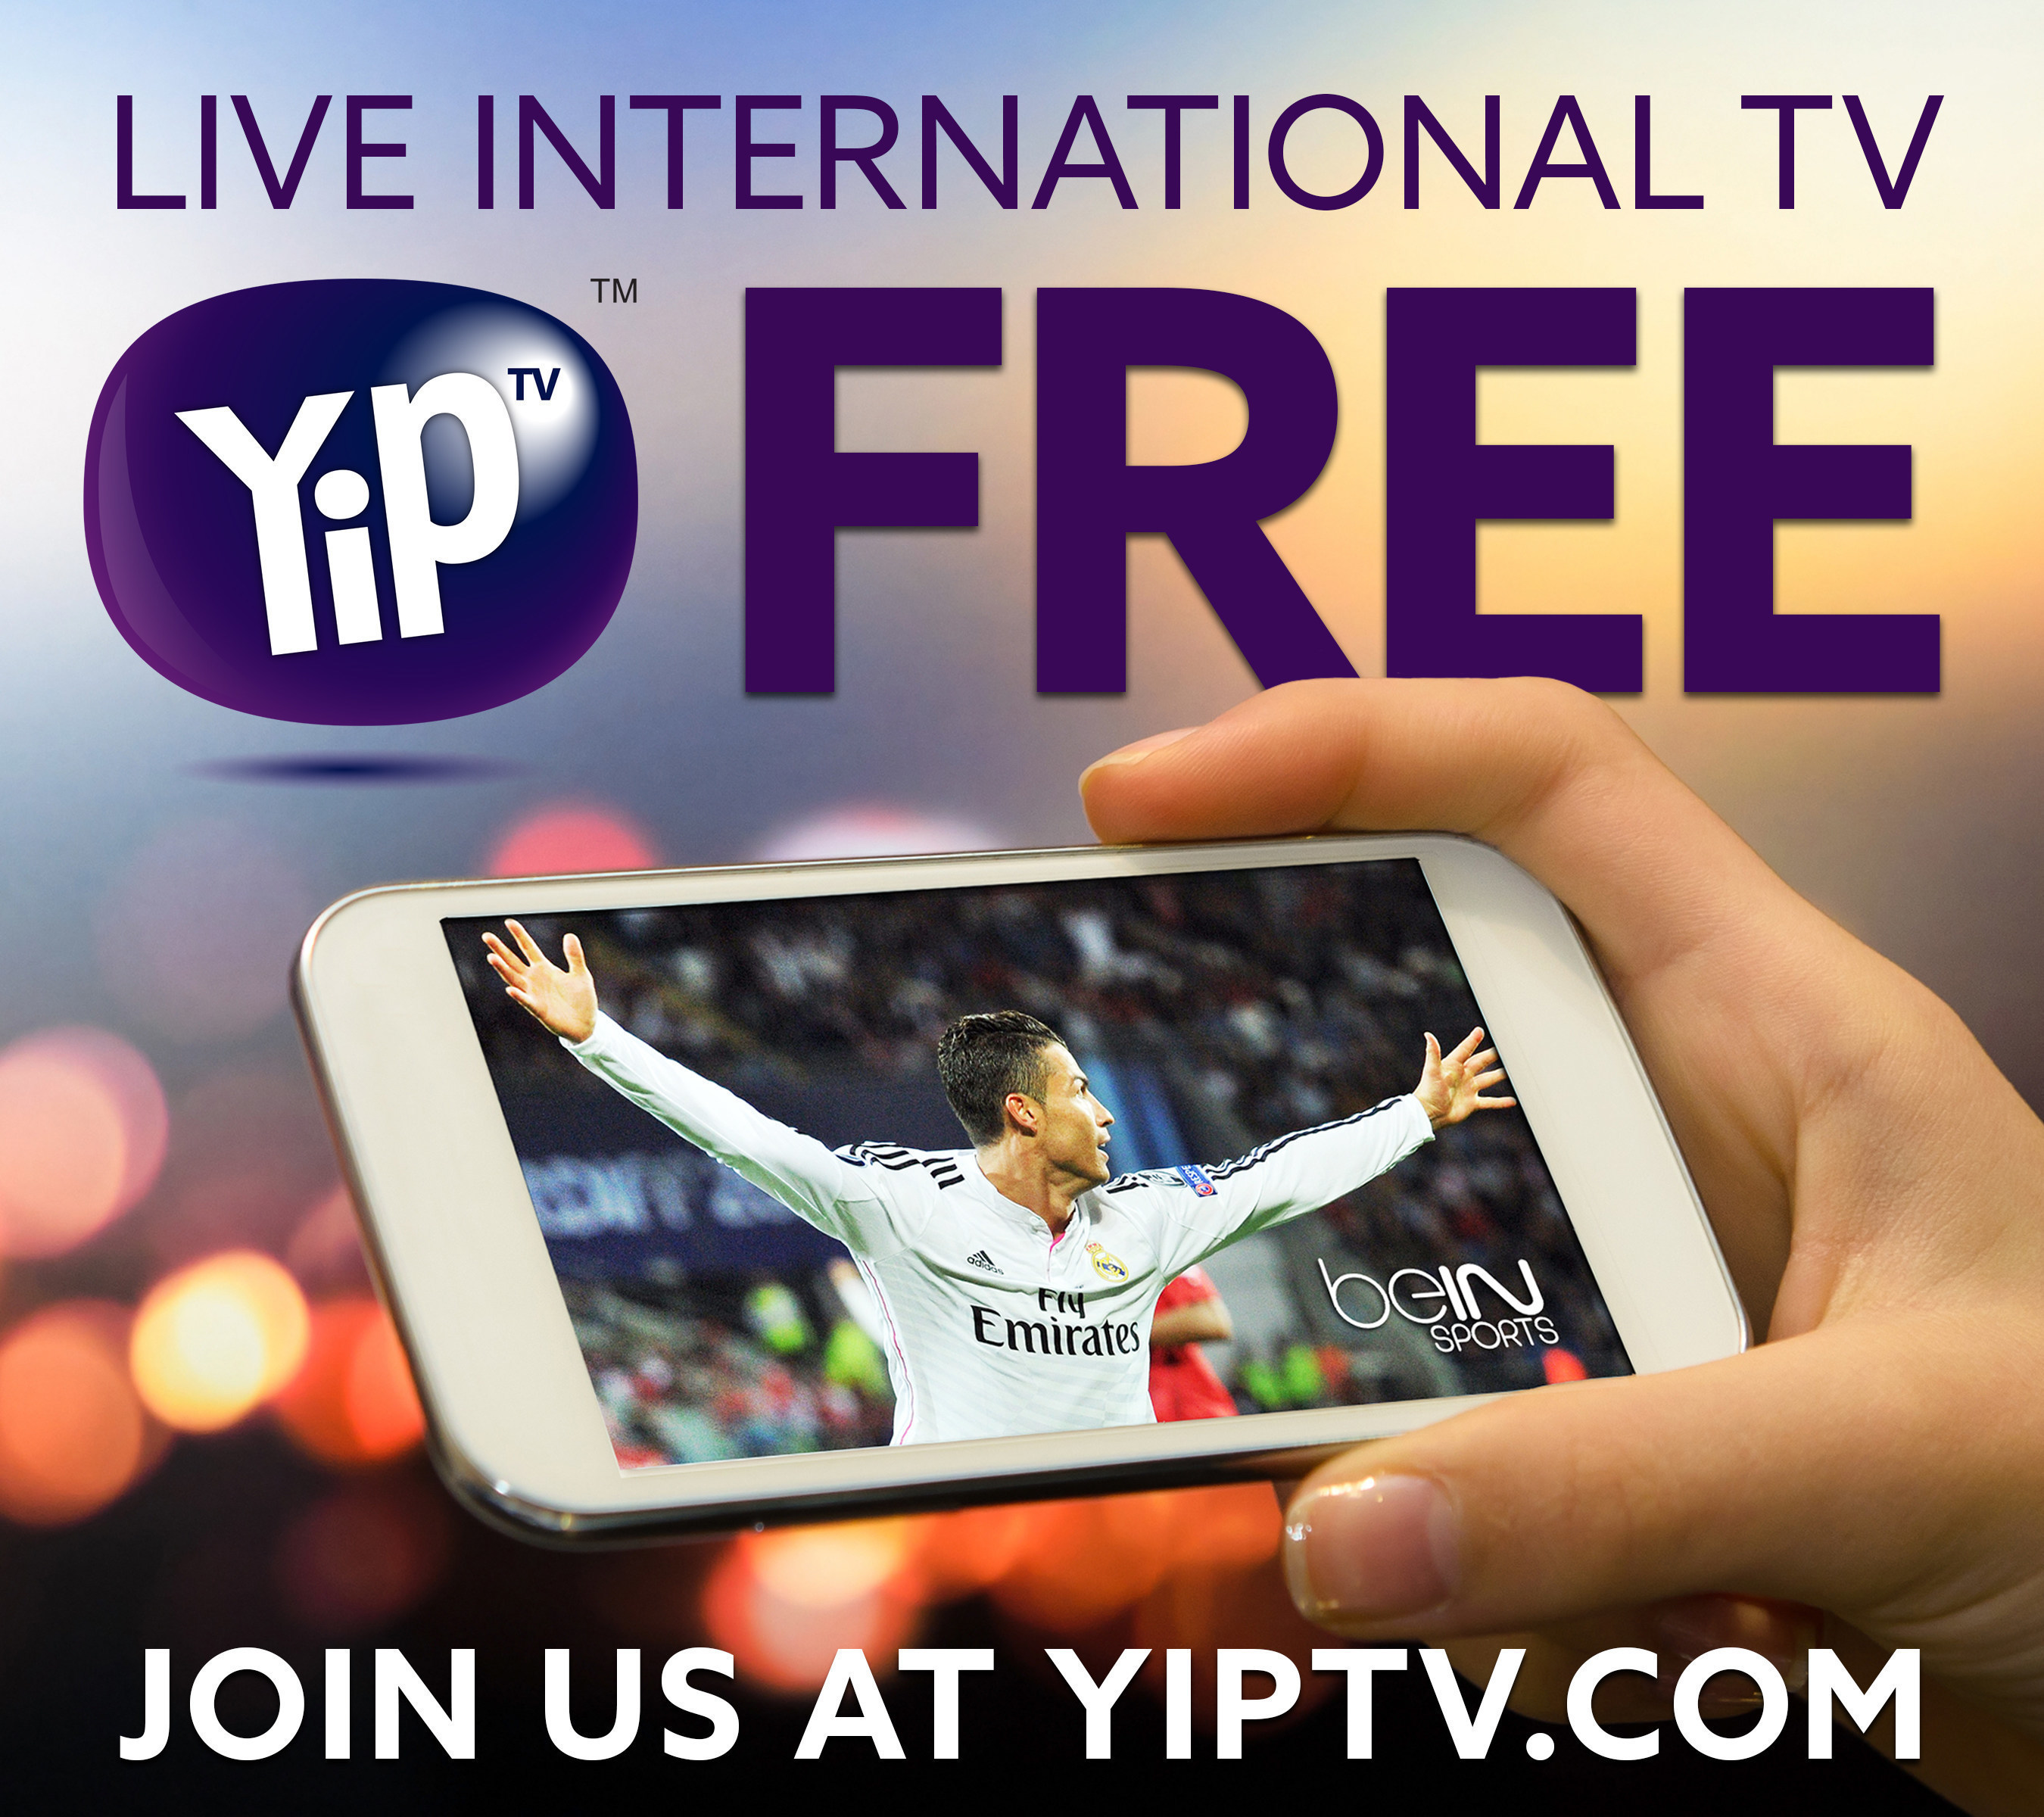 100% FREE LIVE TV!FOR MOBILES AND MORENO CABLENO CONTRACTSNO CREDIT CARDS!ENGLISH, SPANISH & BONUS CHANNELS